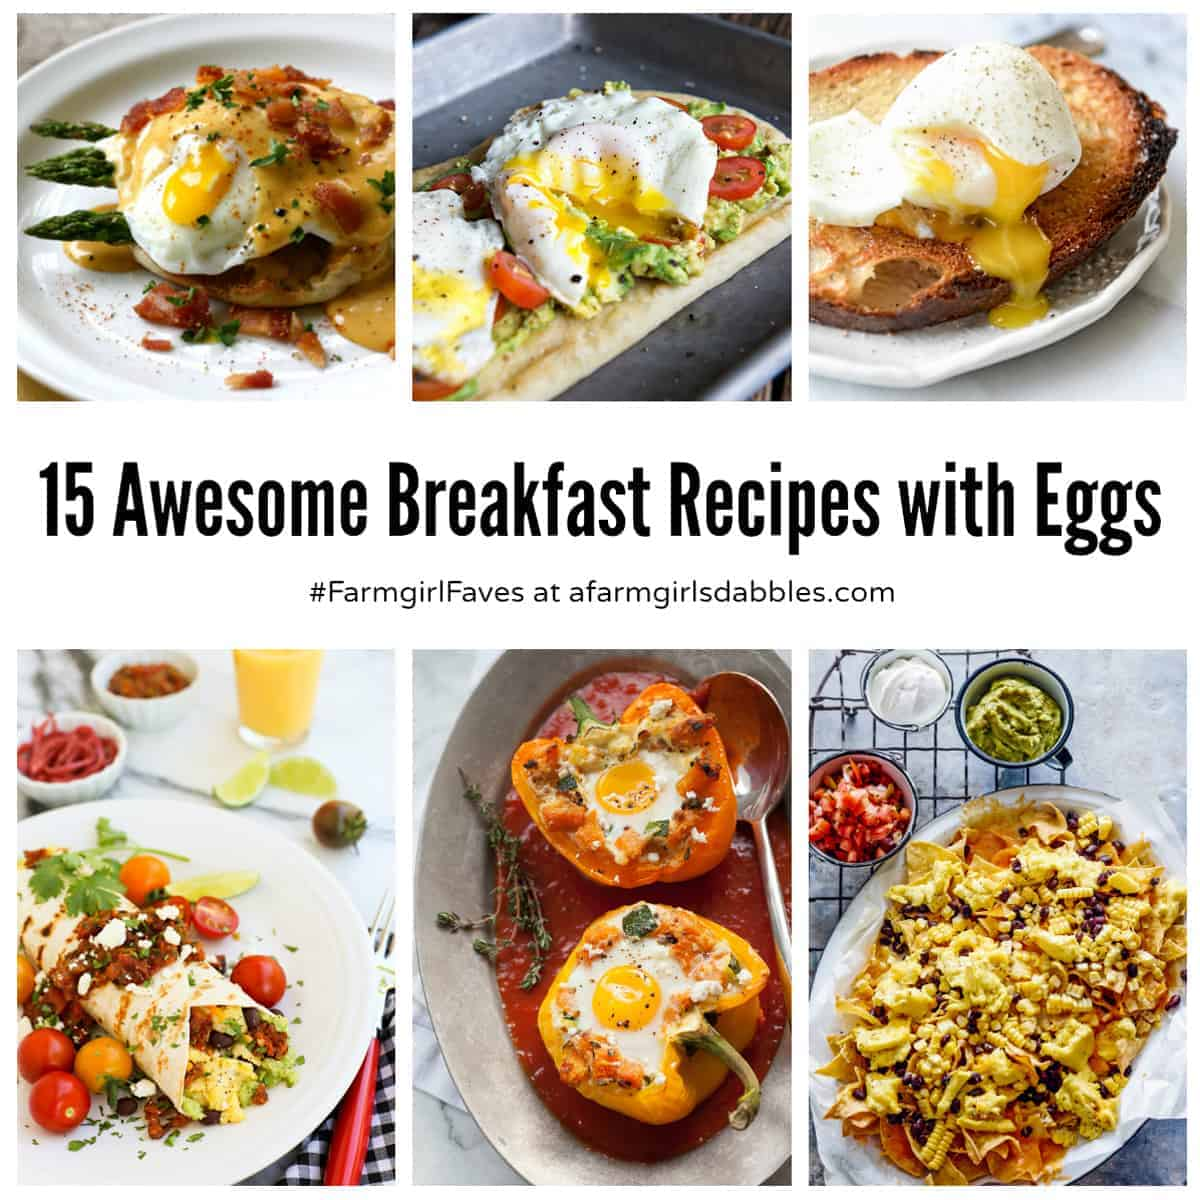 15 Awesome Breakfast Recipes with Eggs • a farmgirl's dabbles - photo#2